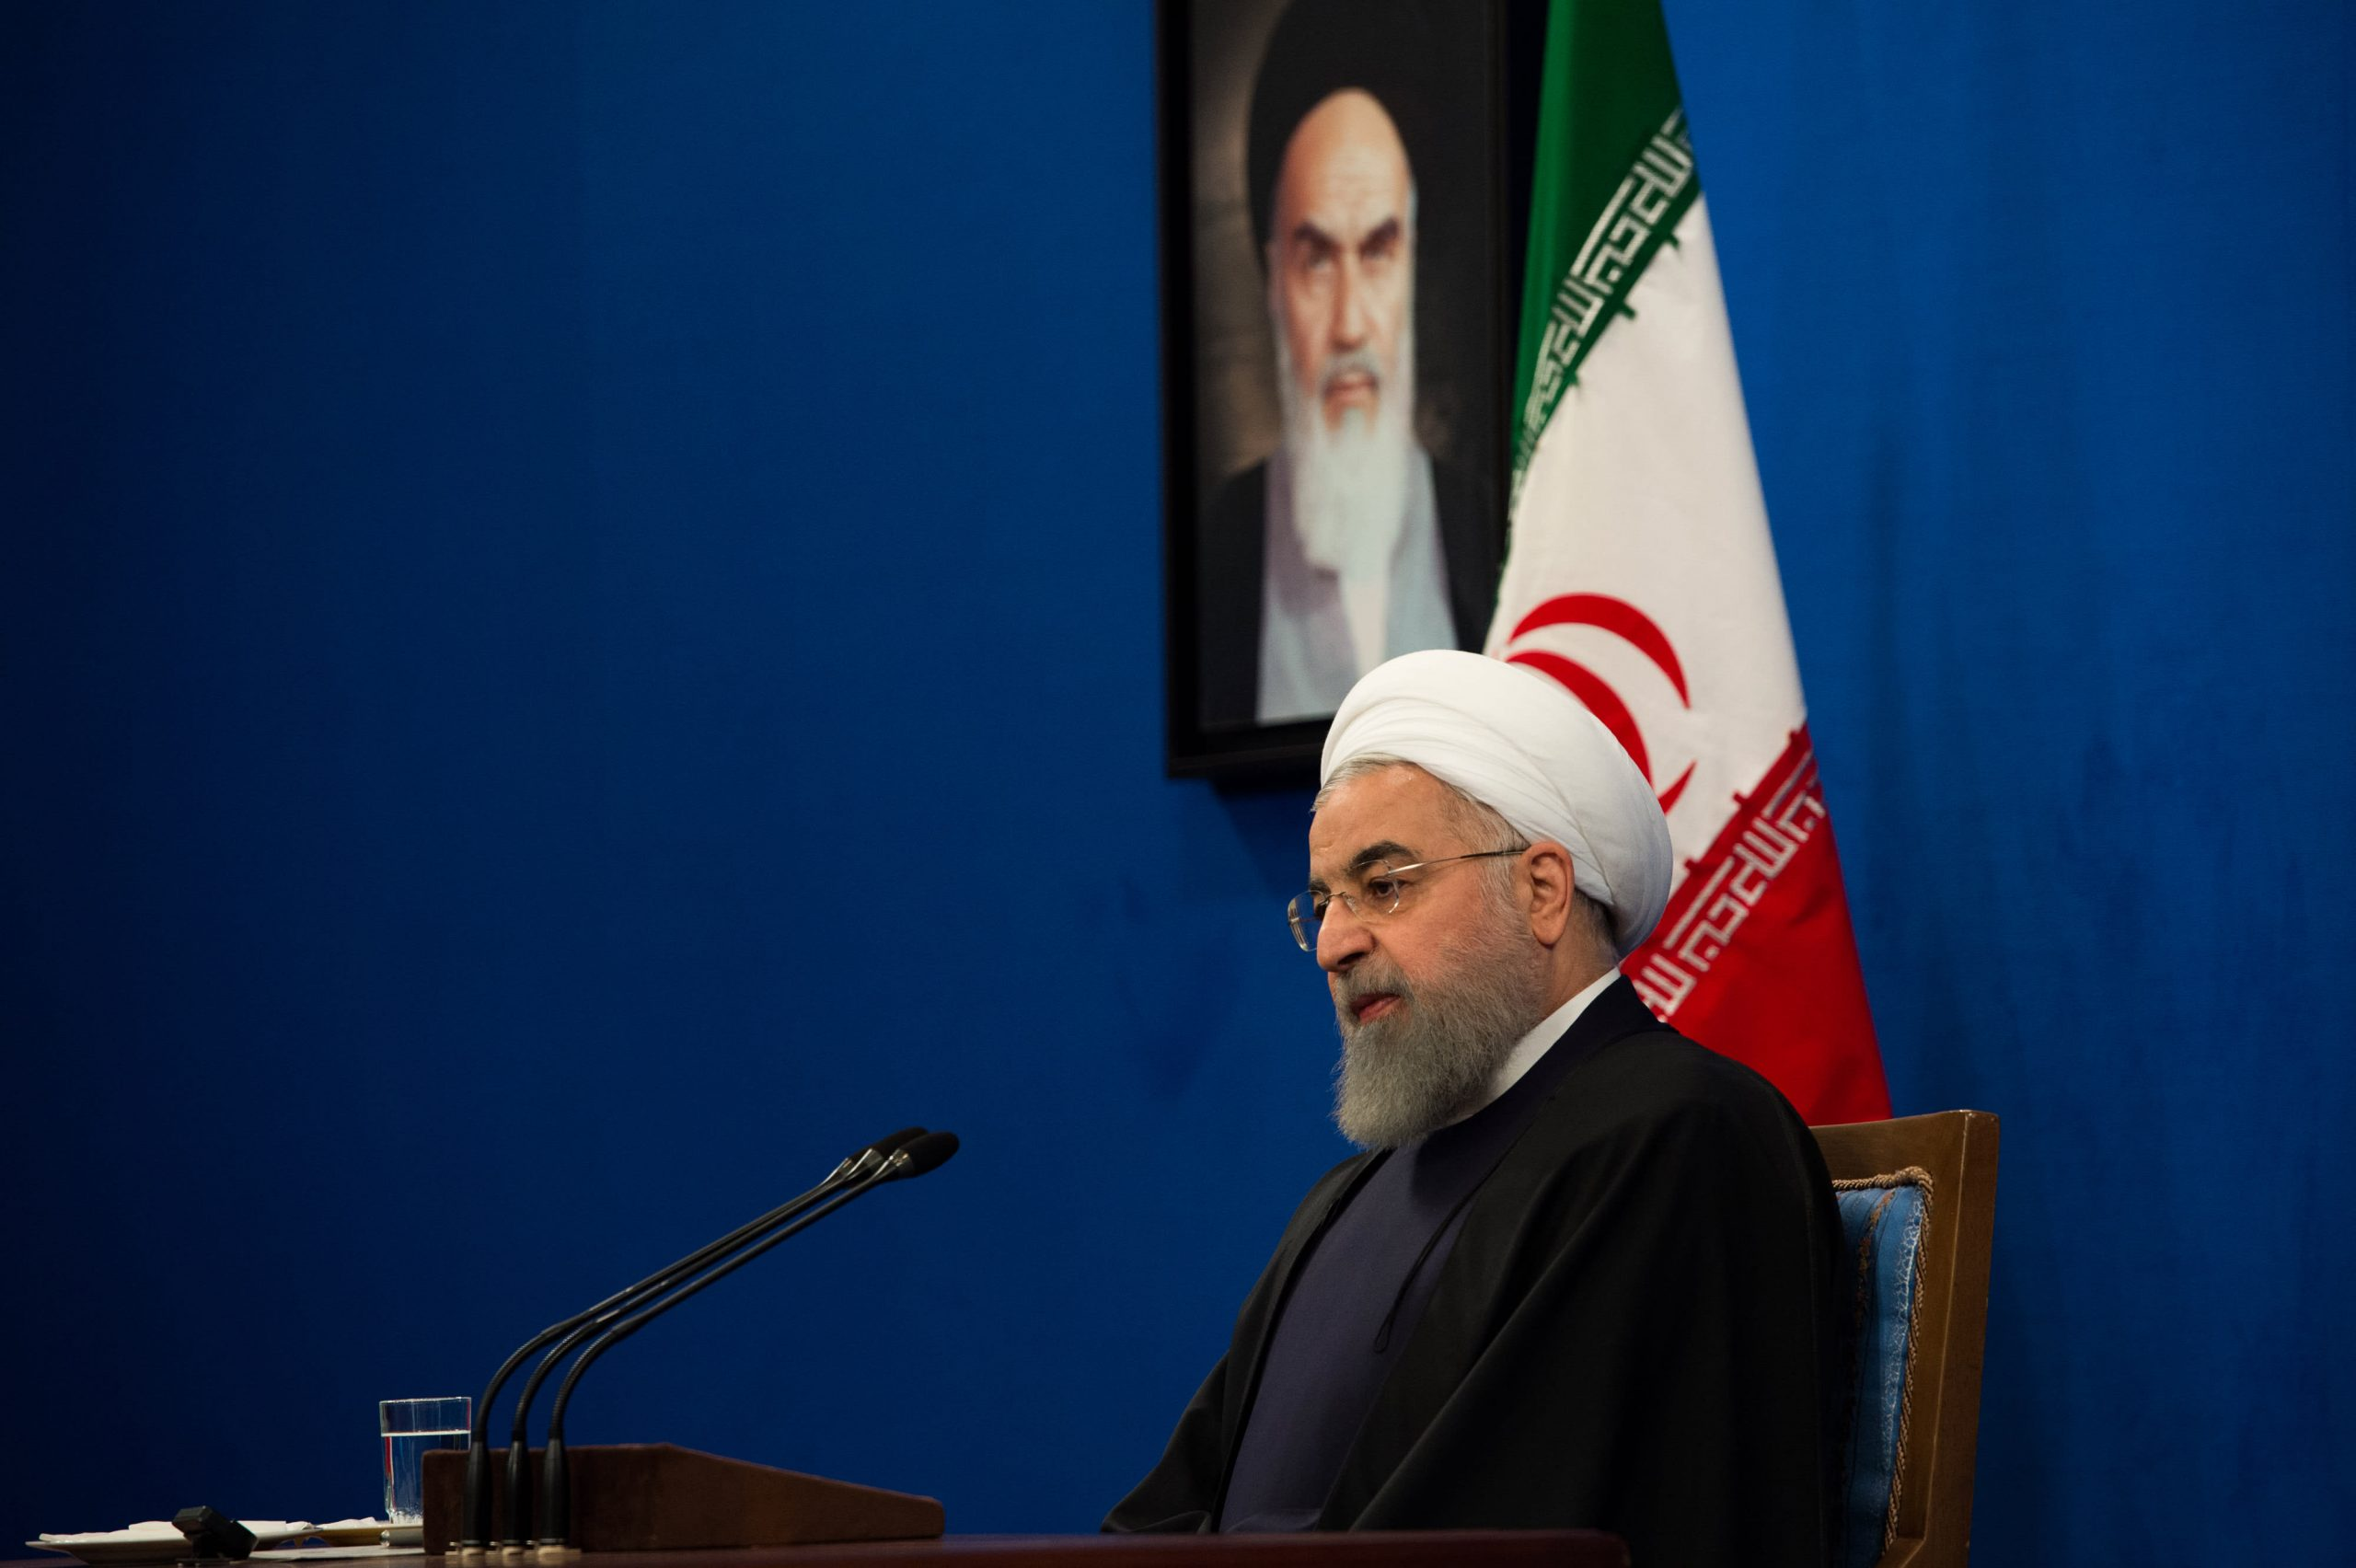 'Danger tomorrow': Iran's Rouhani makes veiled threat to US and EU troops in Middle East